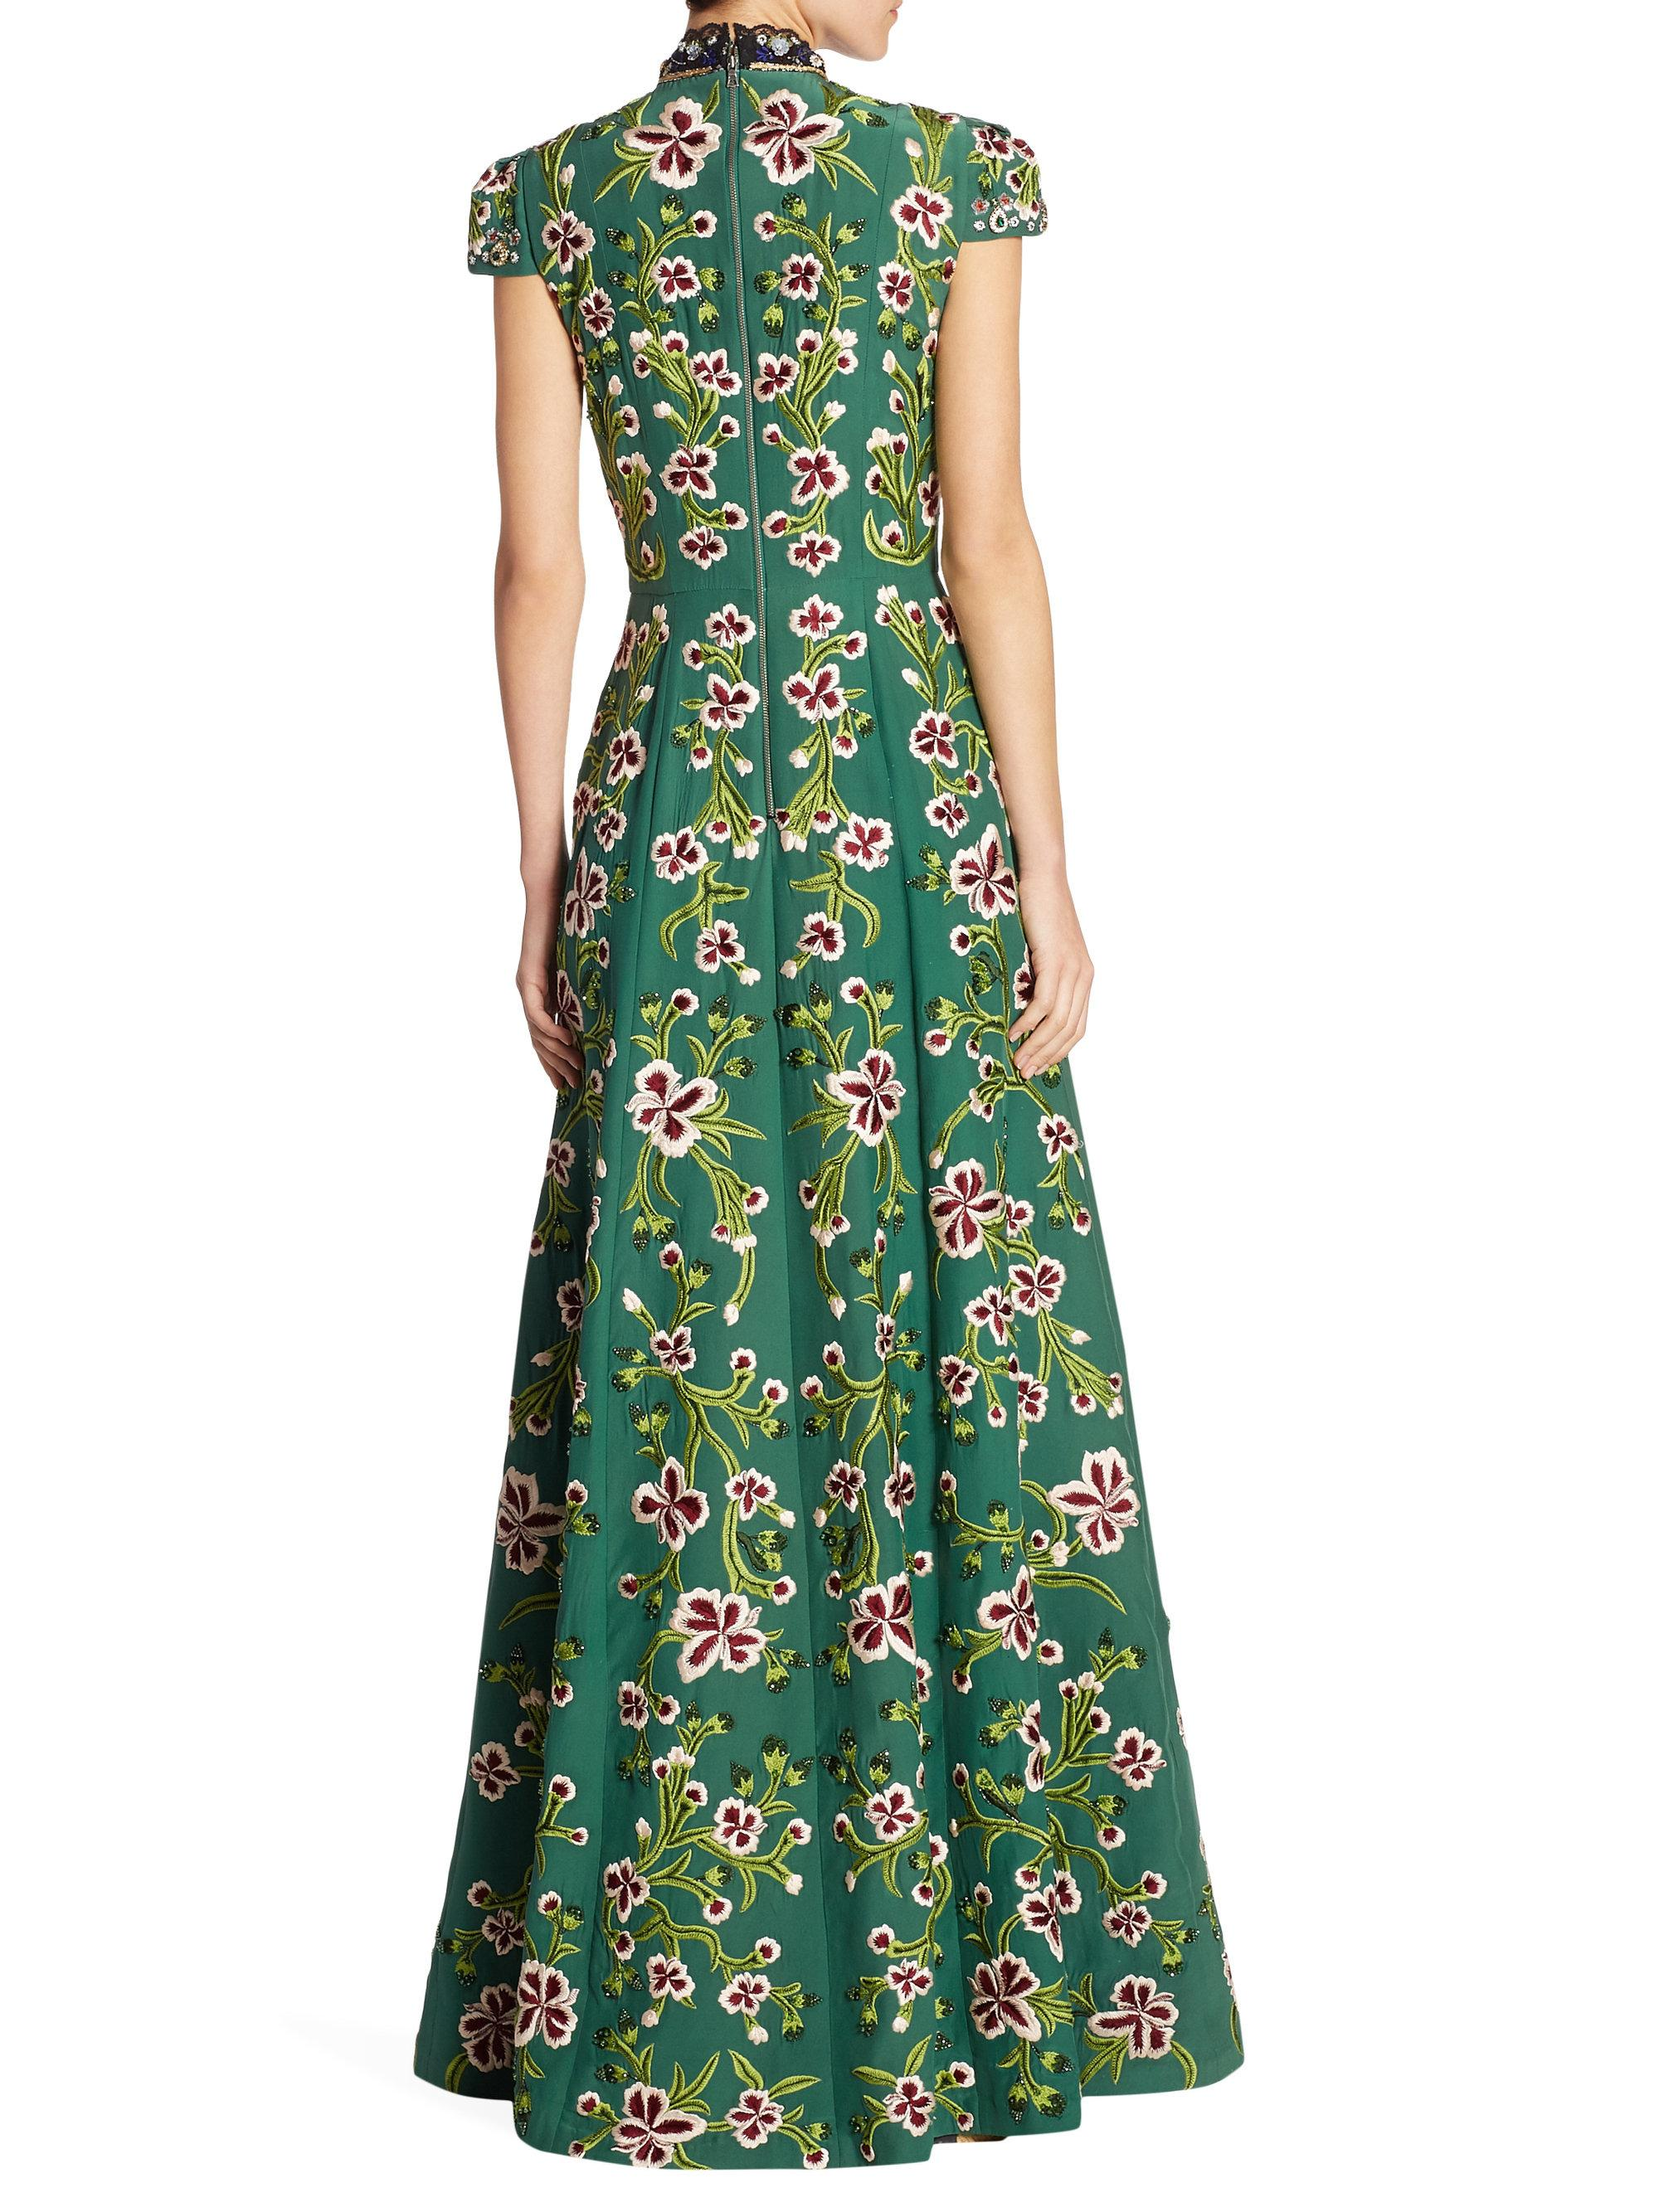 Lyst - Alice + Olivia Nidia Embellished Floral Gown in Green